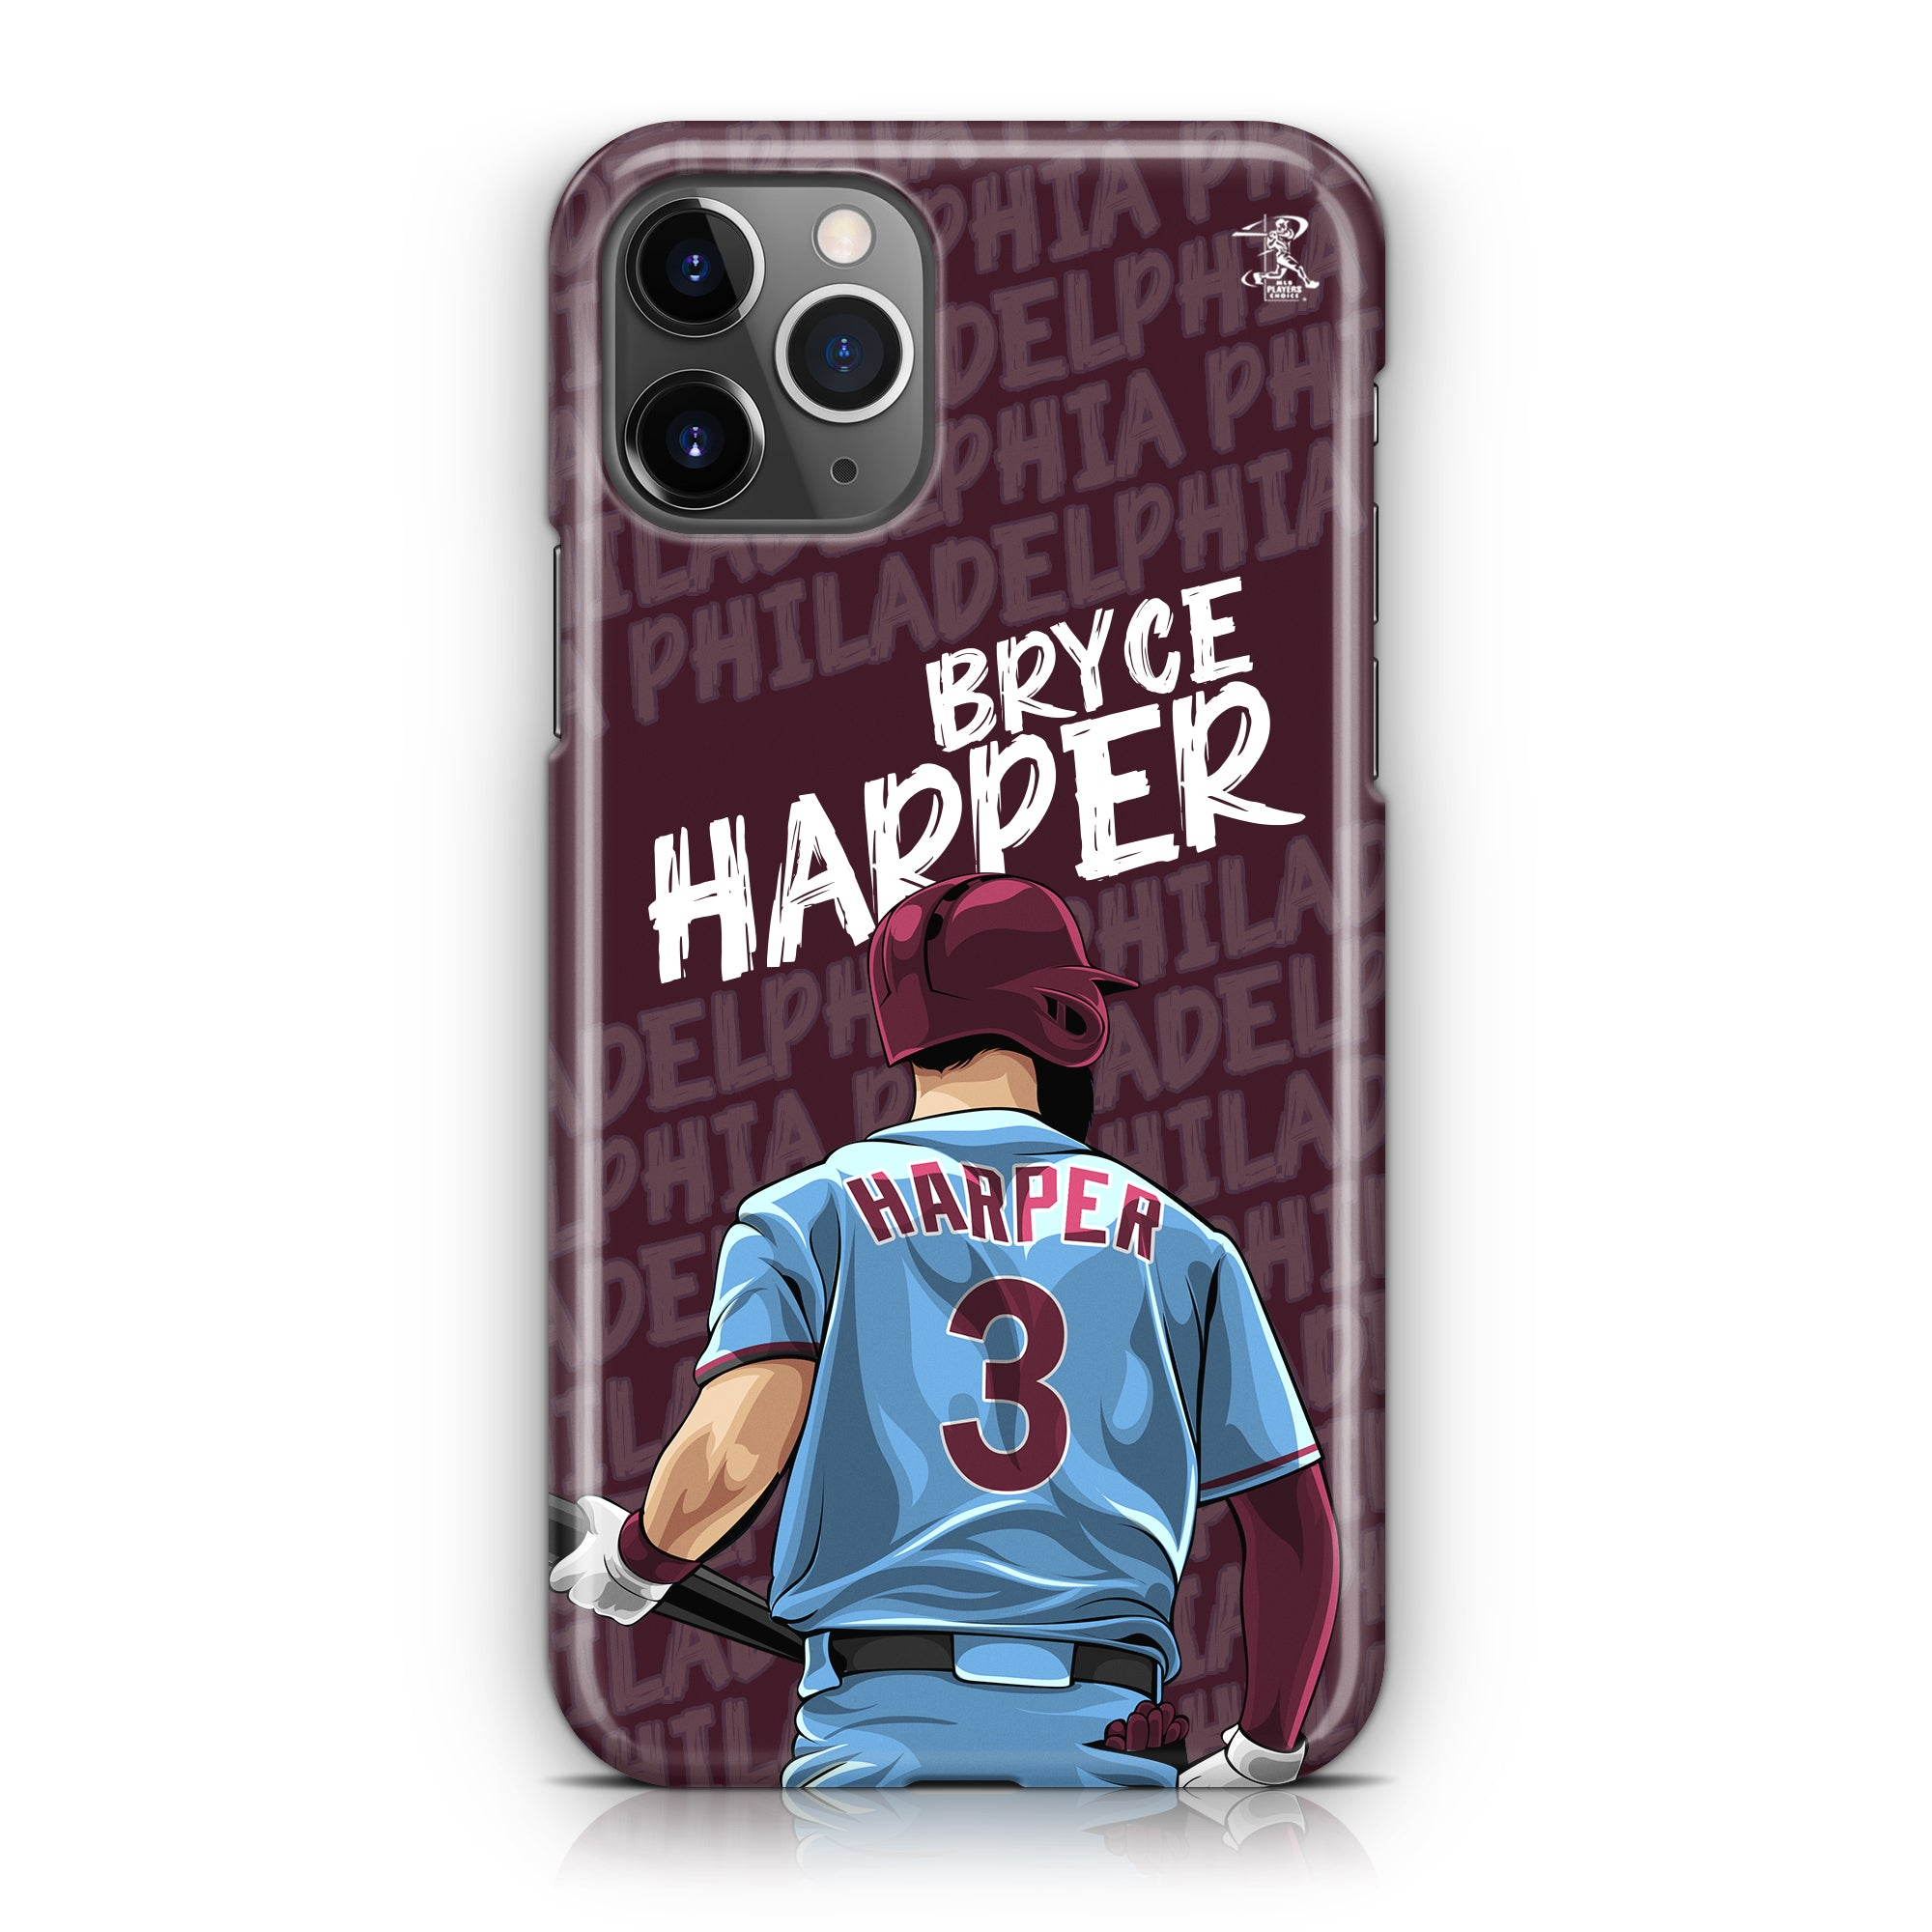 Harper Star Series 2.0 Case